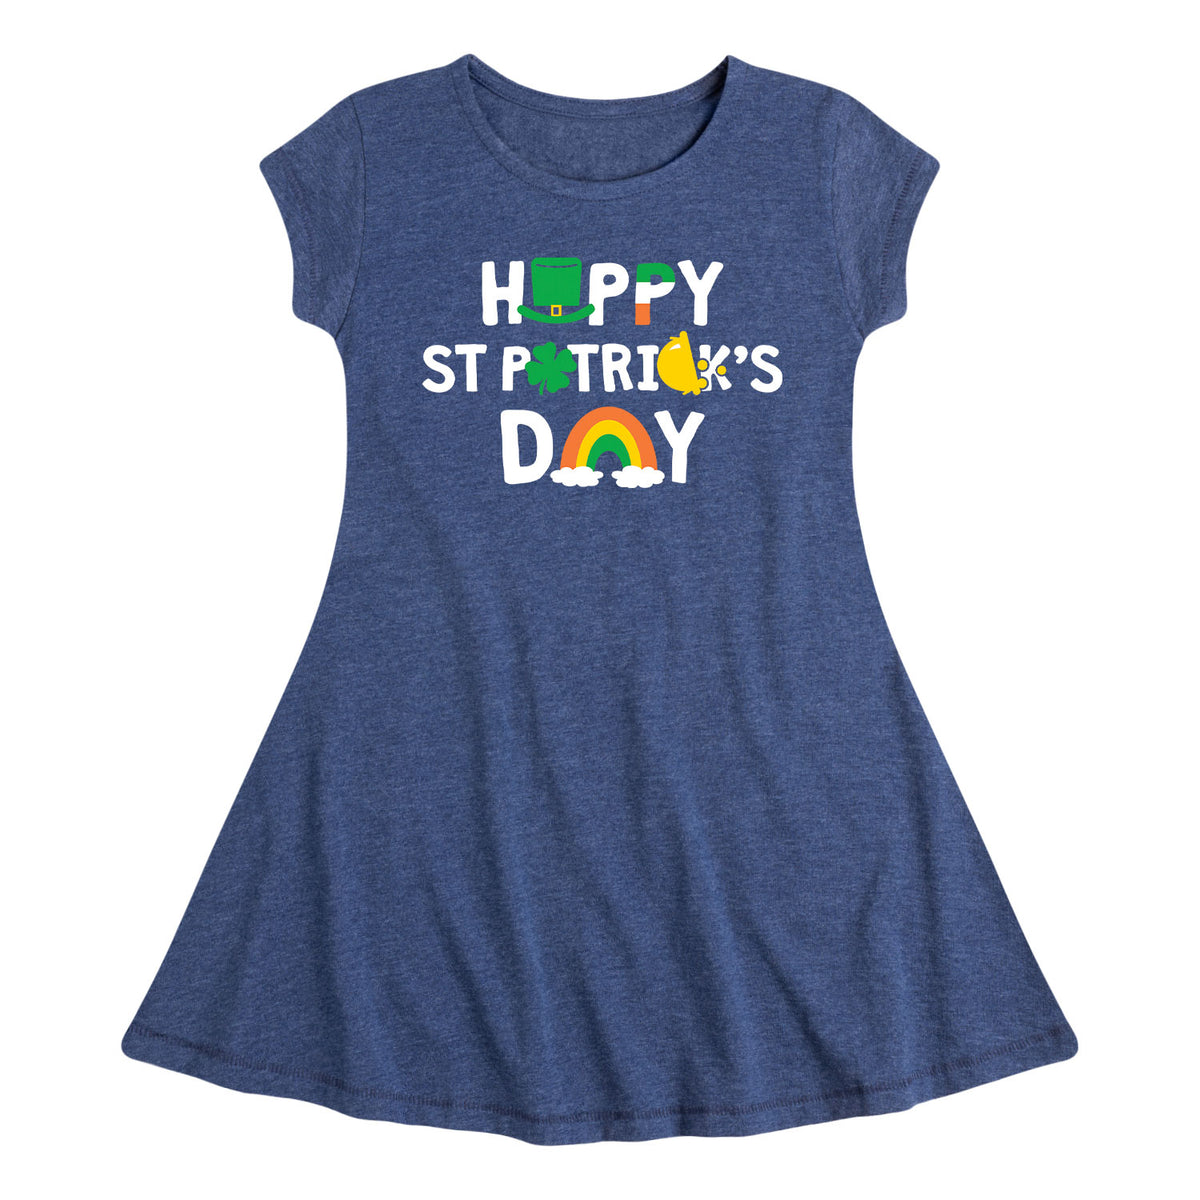 Happy St. Patrick's - Youth & Toddler Girls Fit and Flare Dress